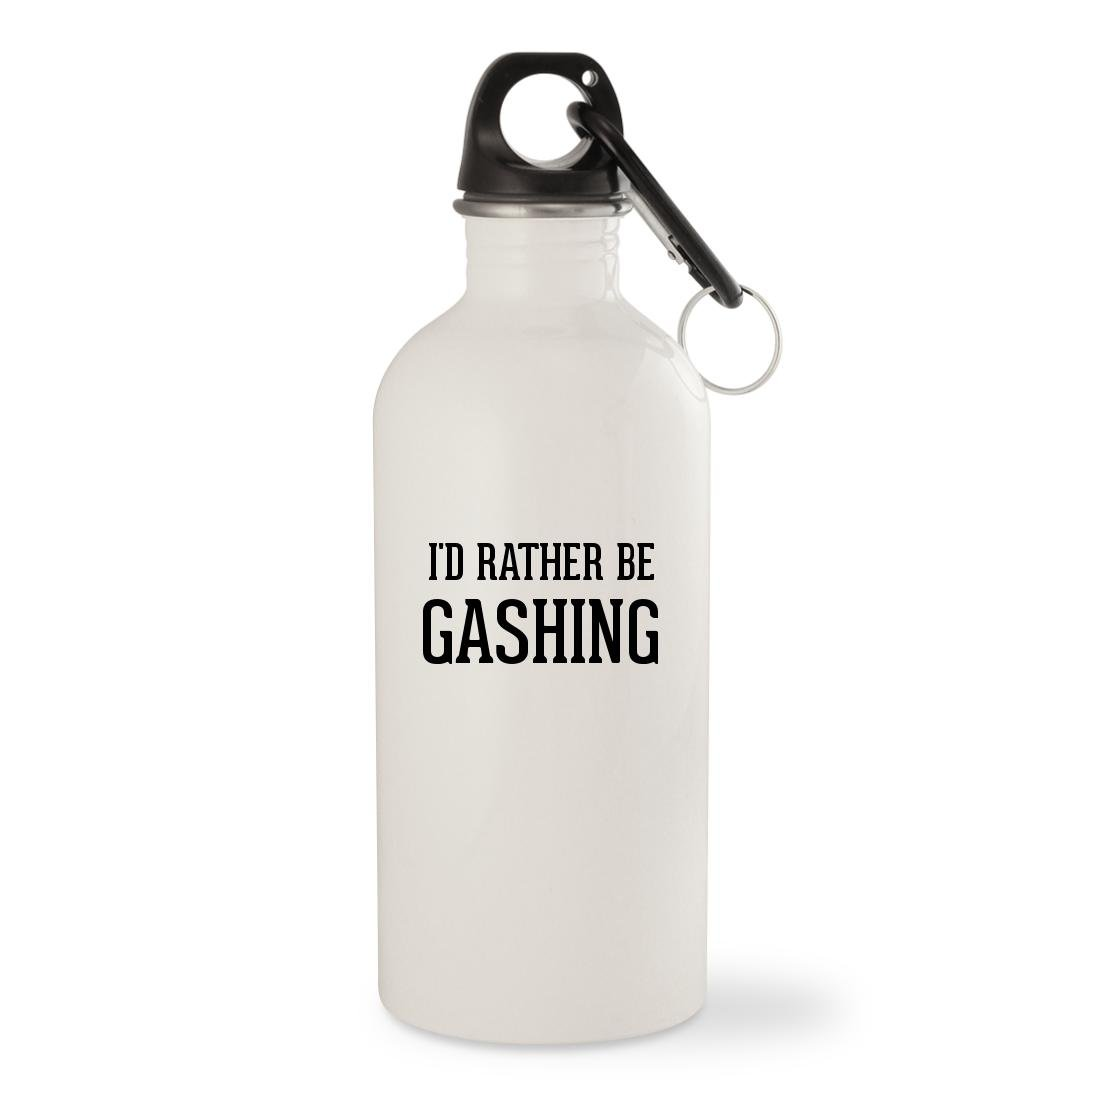 I'd Rather Be GASHING - White 20oz Stainless Steel Water Bottle with Carabiner